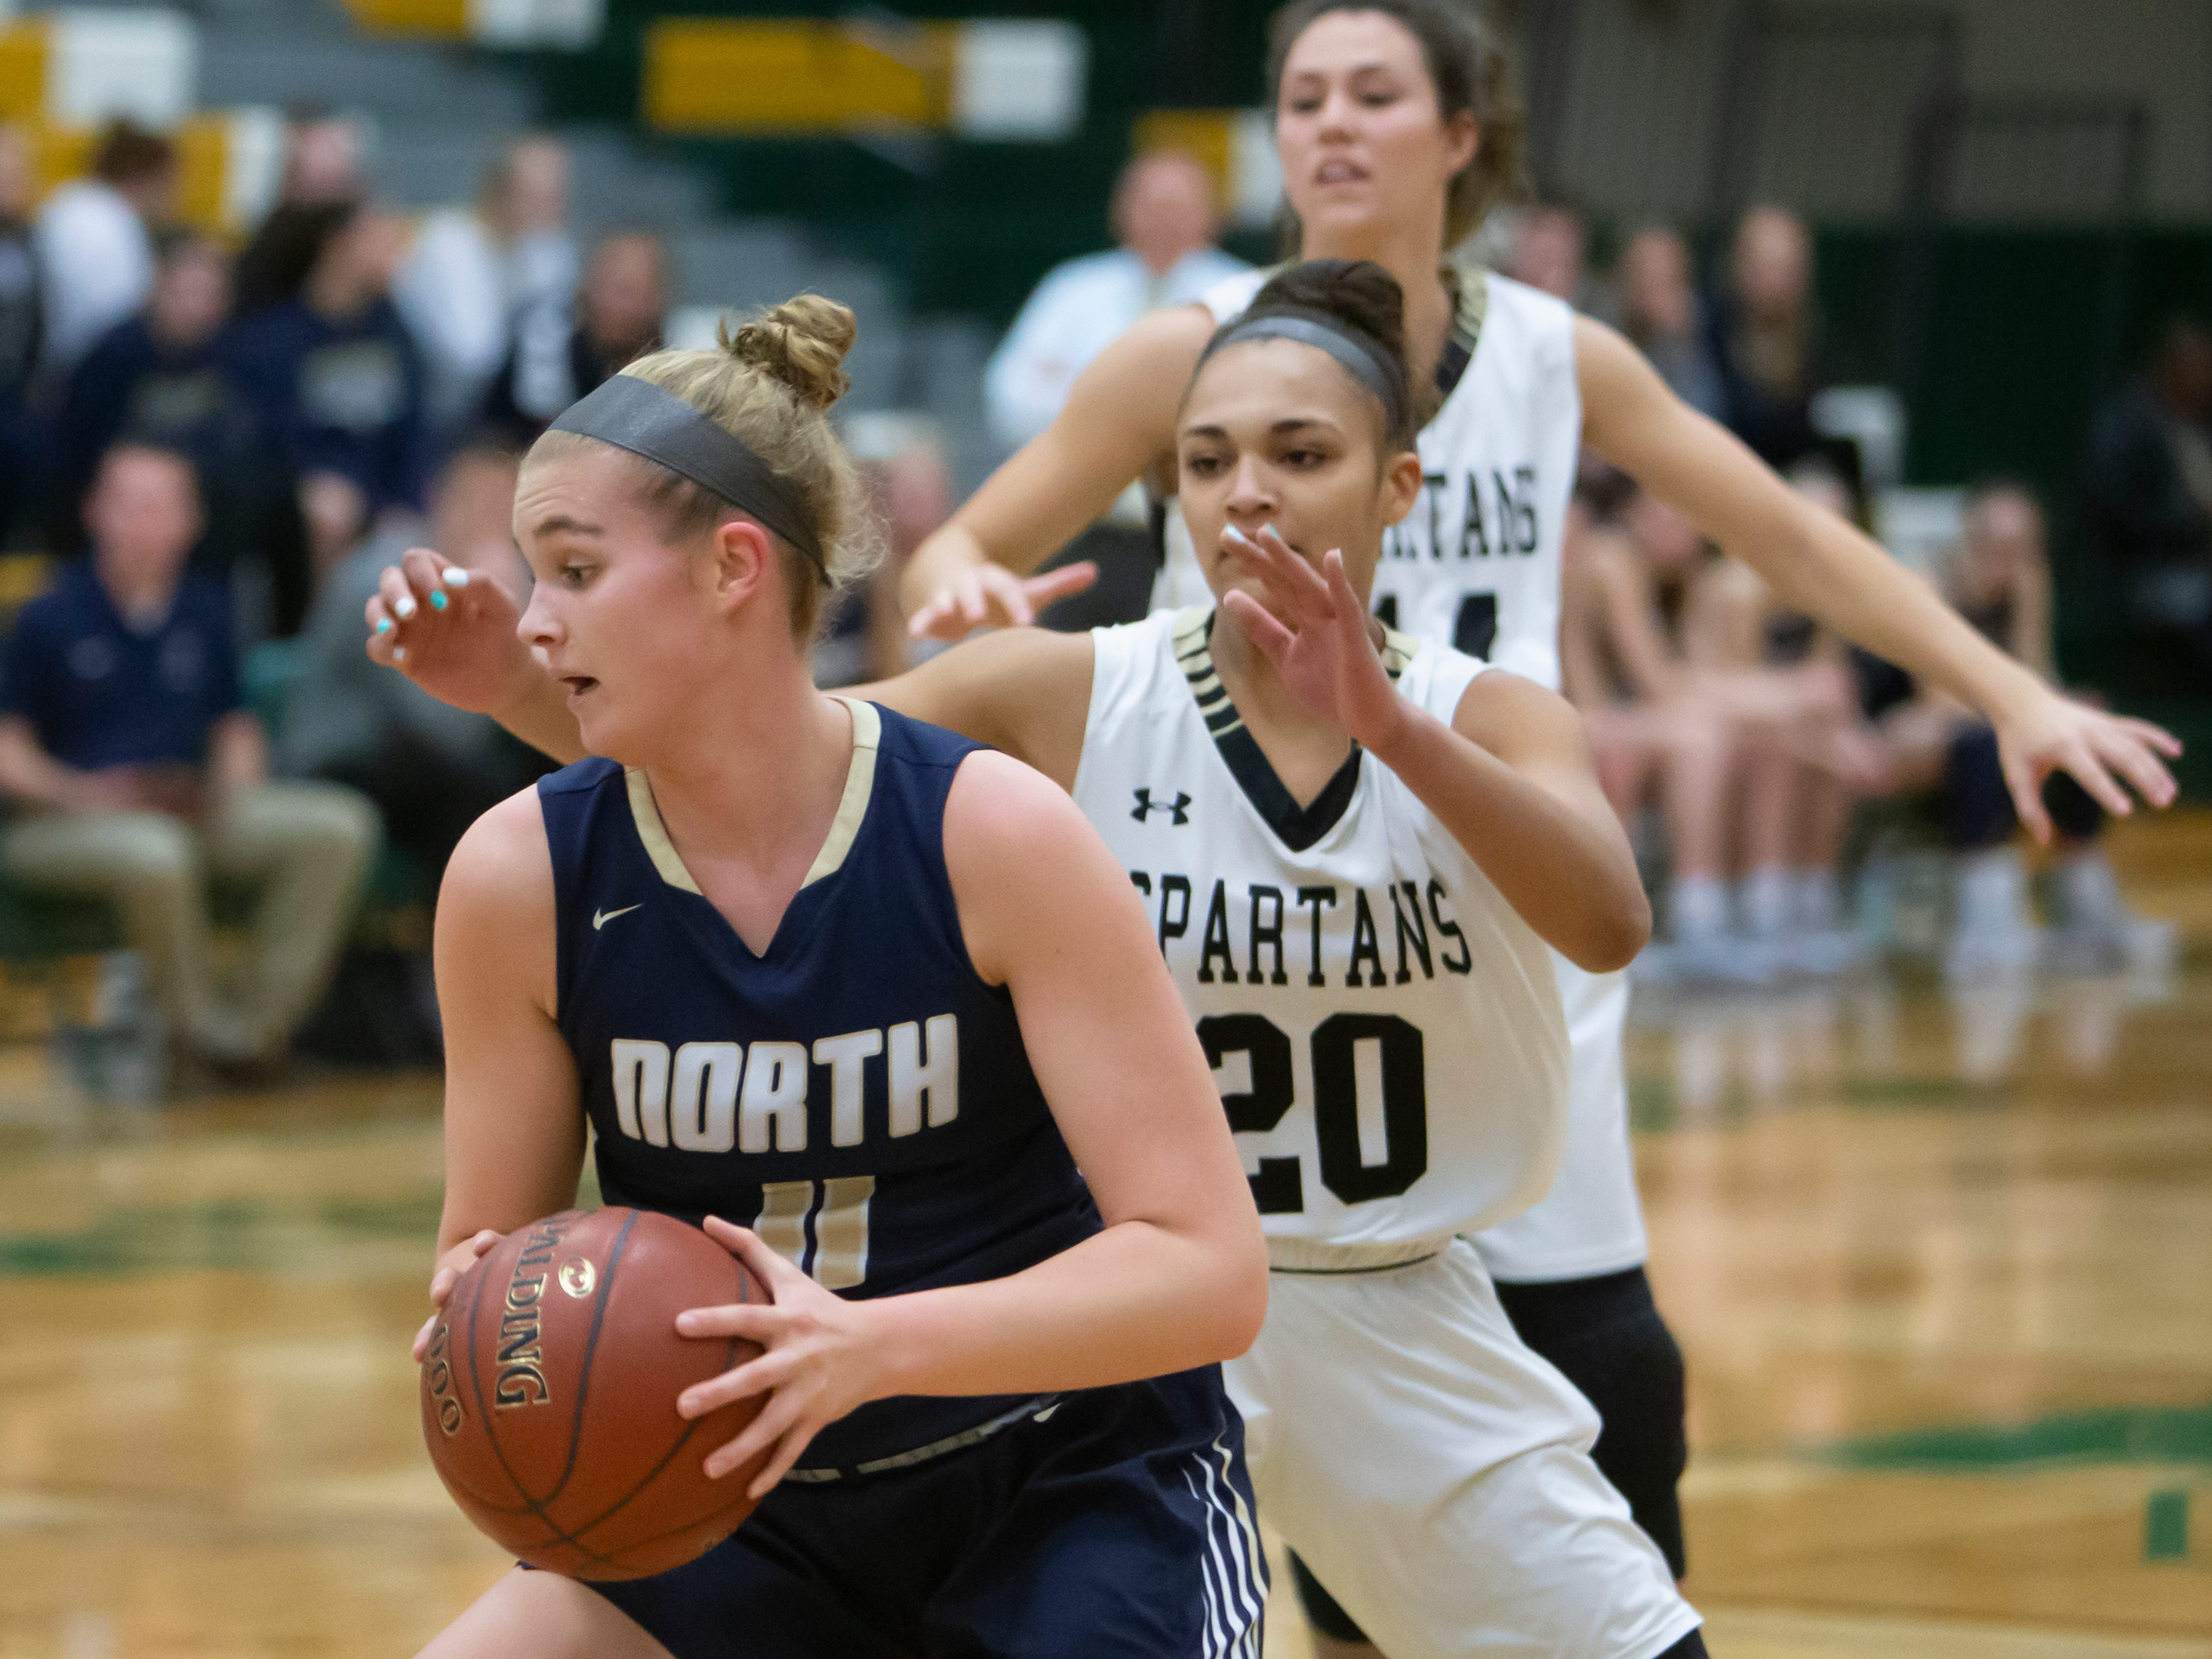 Appleton North's Emma Erickson looks for an opening to the basket playing against Oshkosh North during the girls basketball game Friday, February 8, 2019, in Oshkosh, Wis., at Oshkosh North High School.